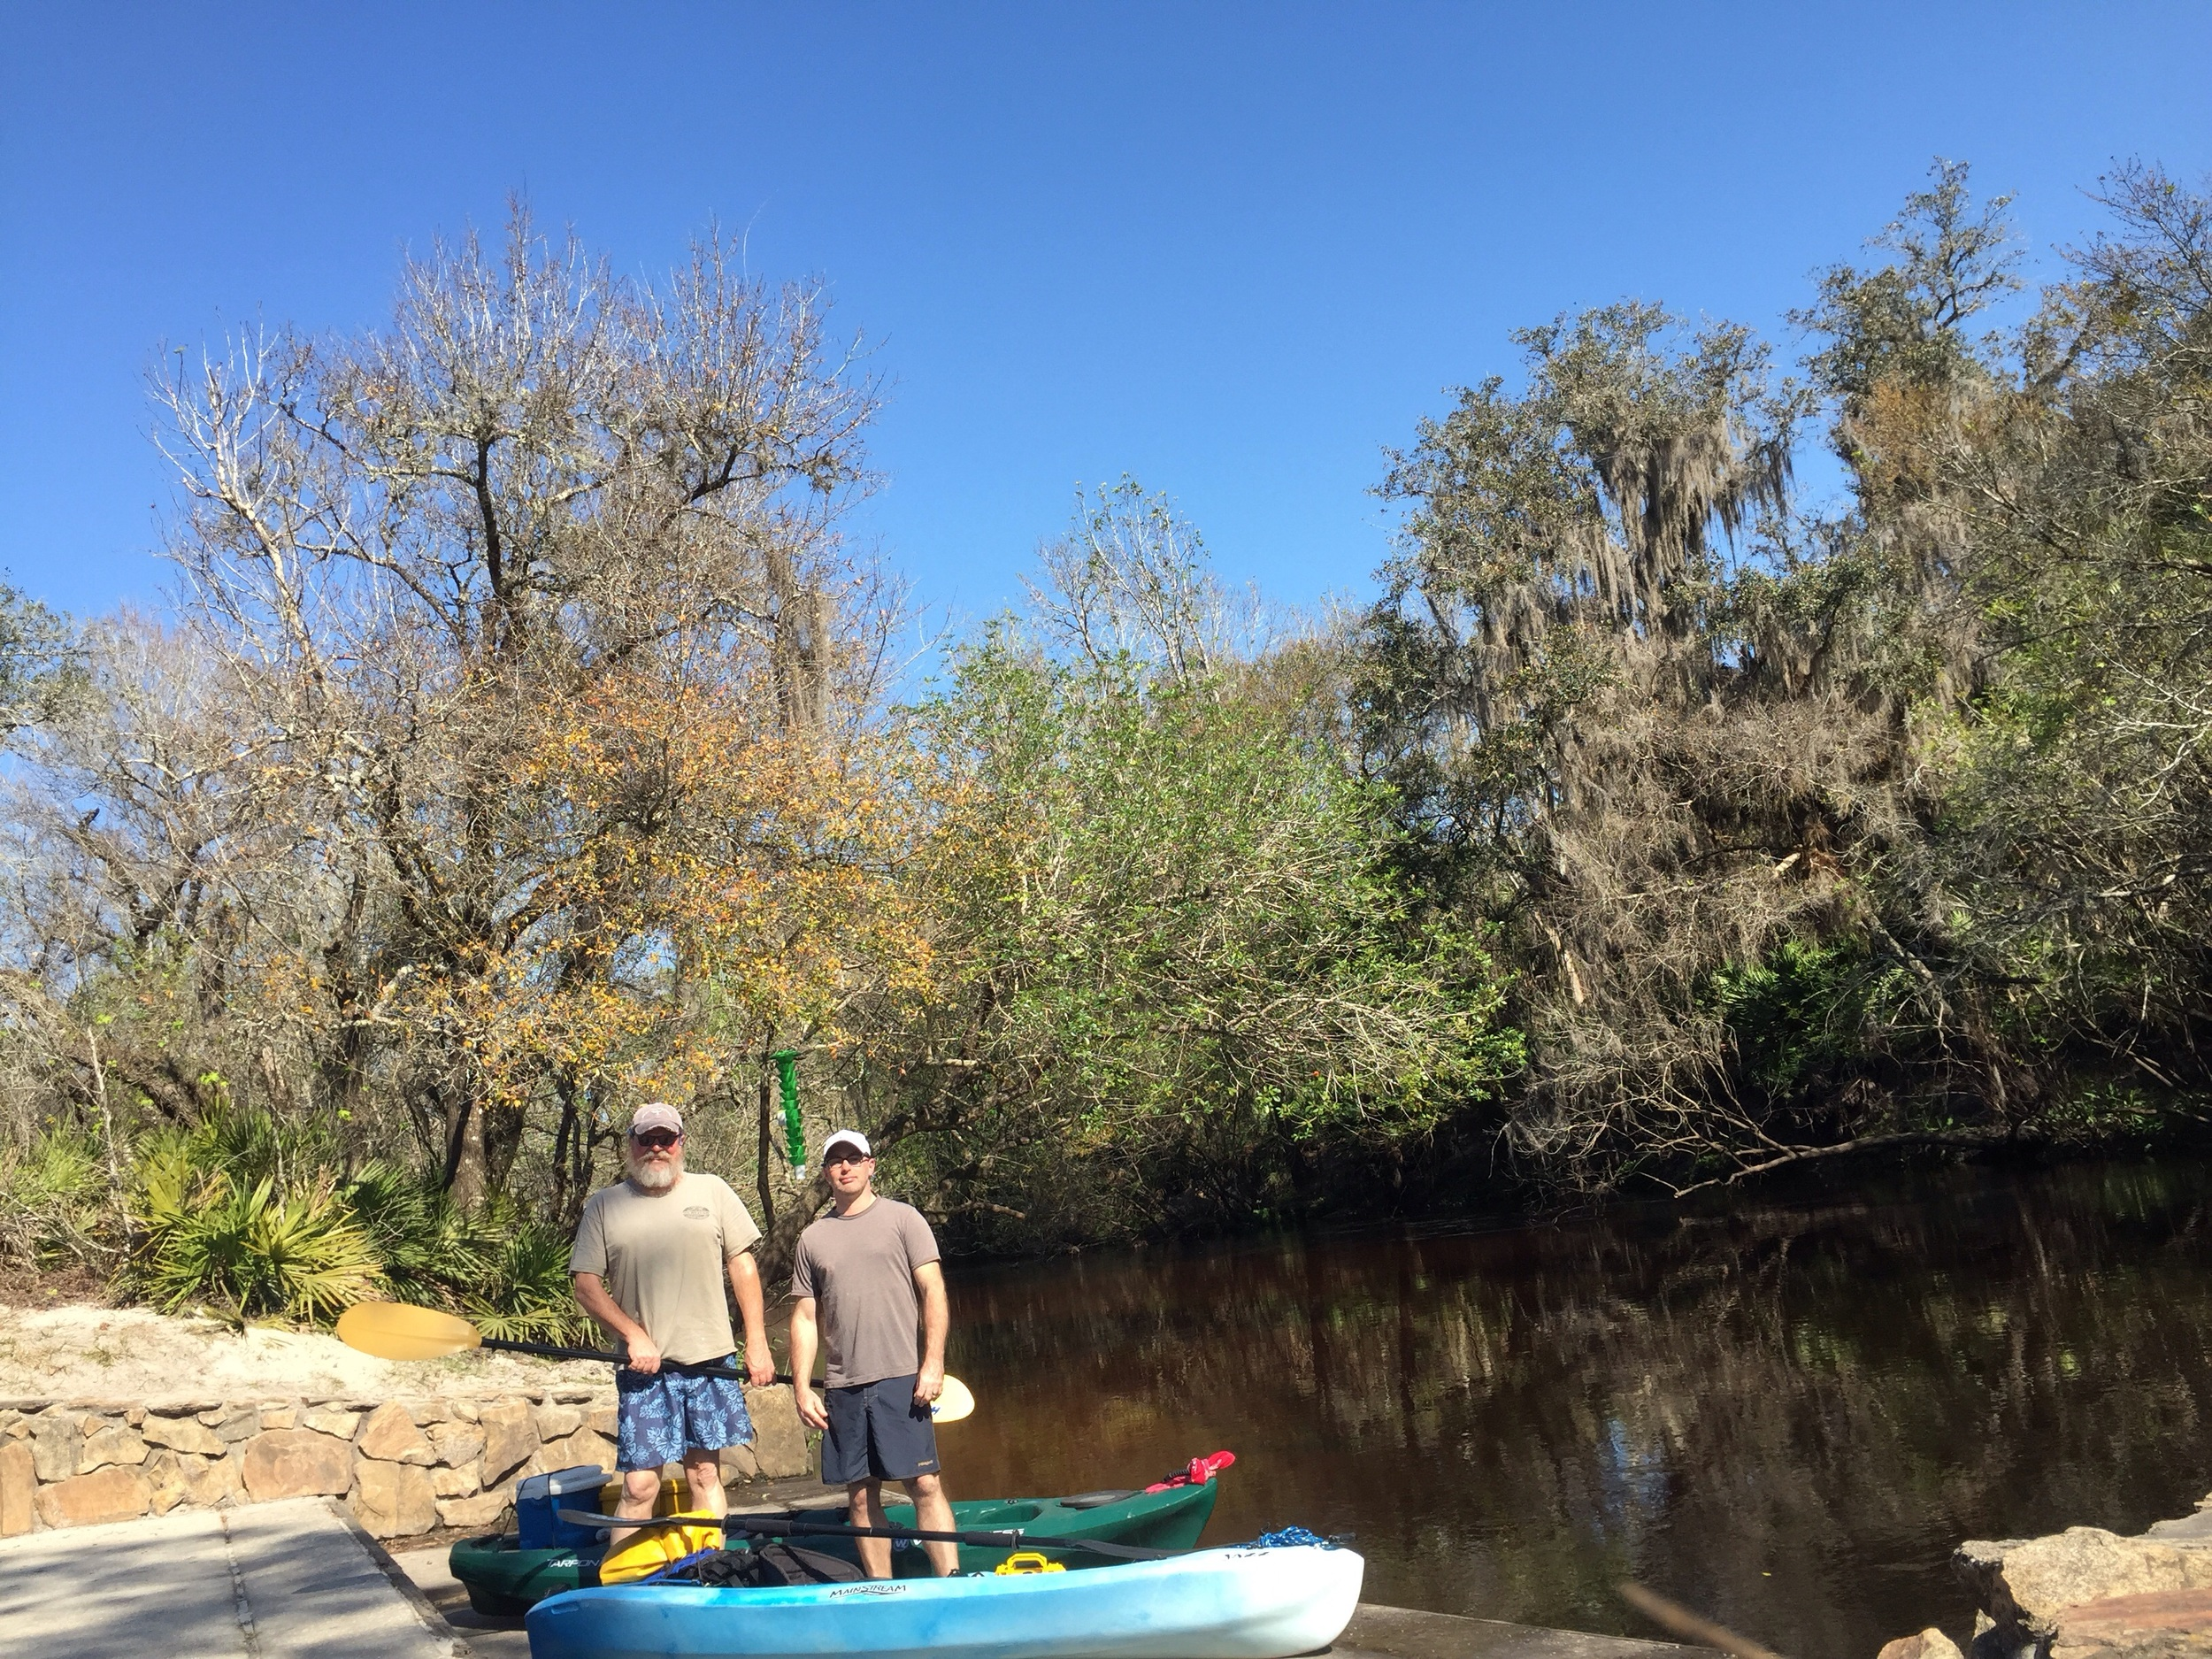 Clear skies and 73 degree weather make for a good day on the river.